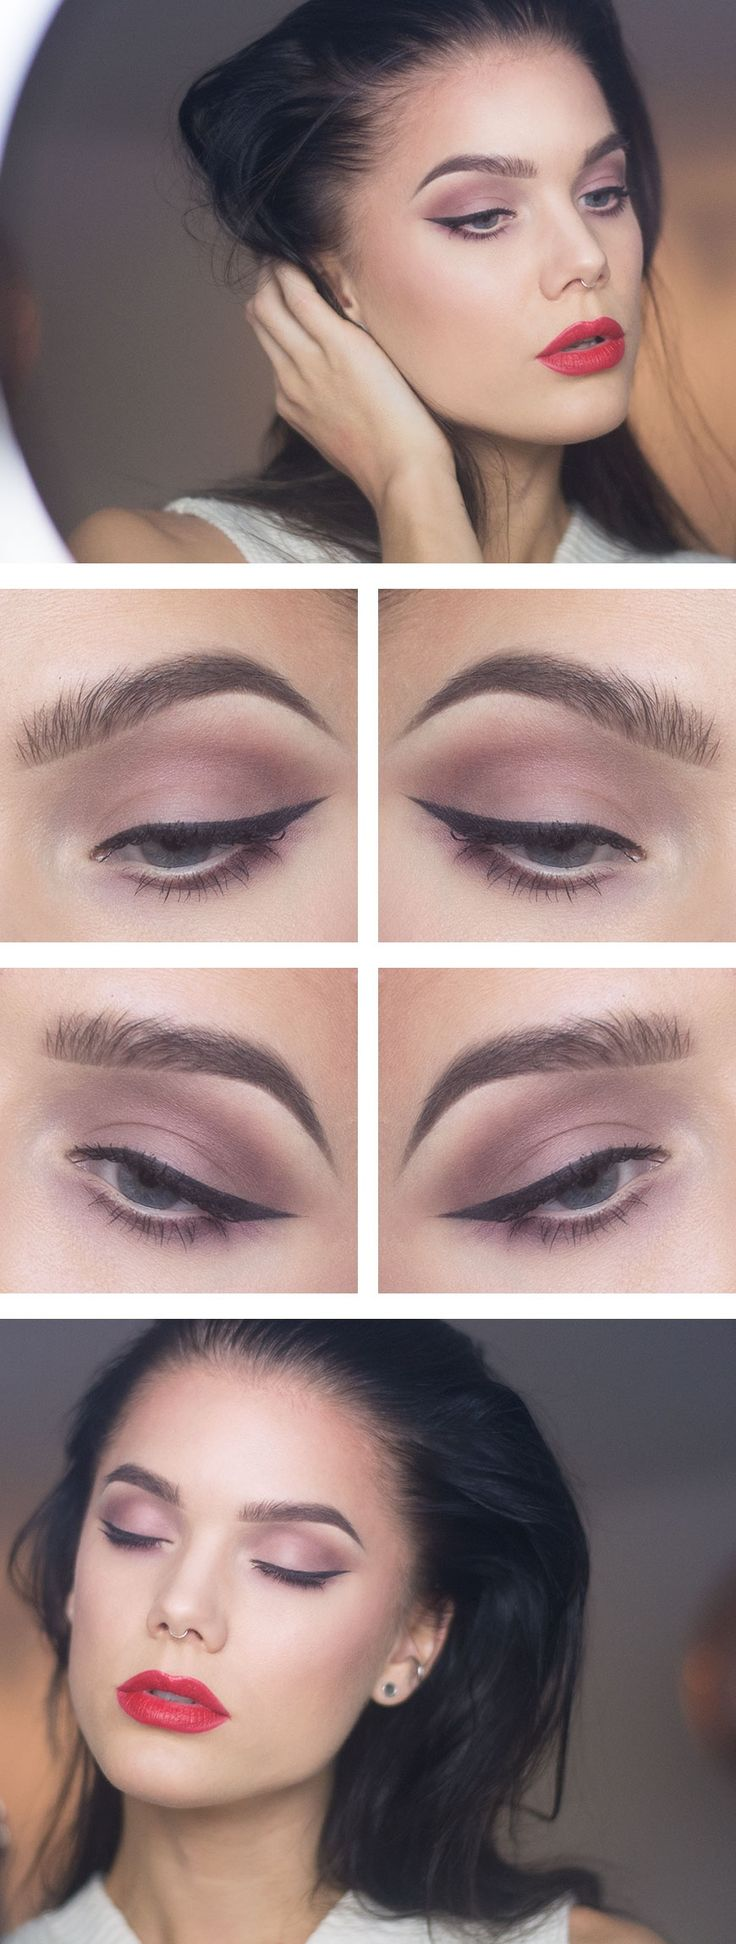 Jag har använt/i've used Too faced shadow insurance MAC eyeshadow Vainglorious…